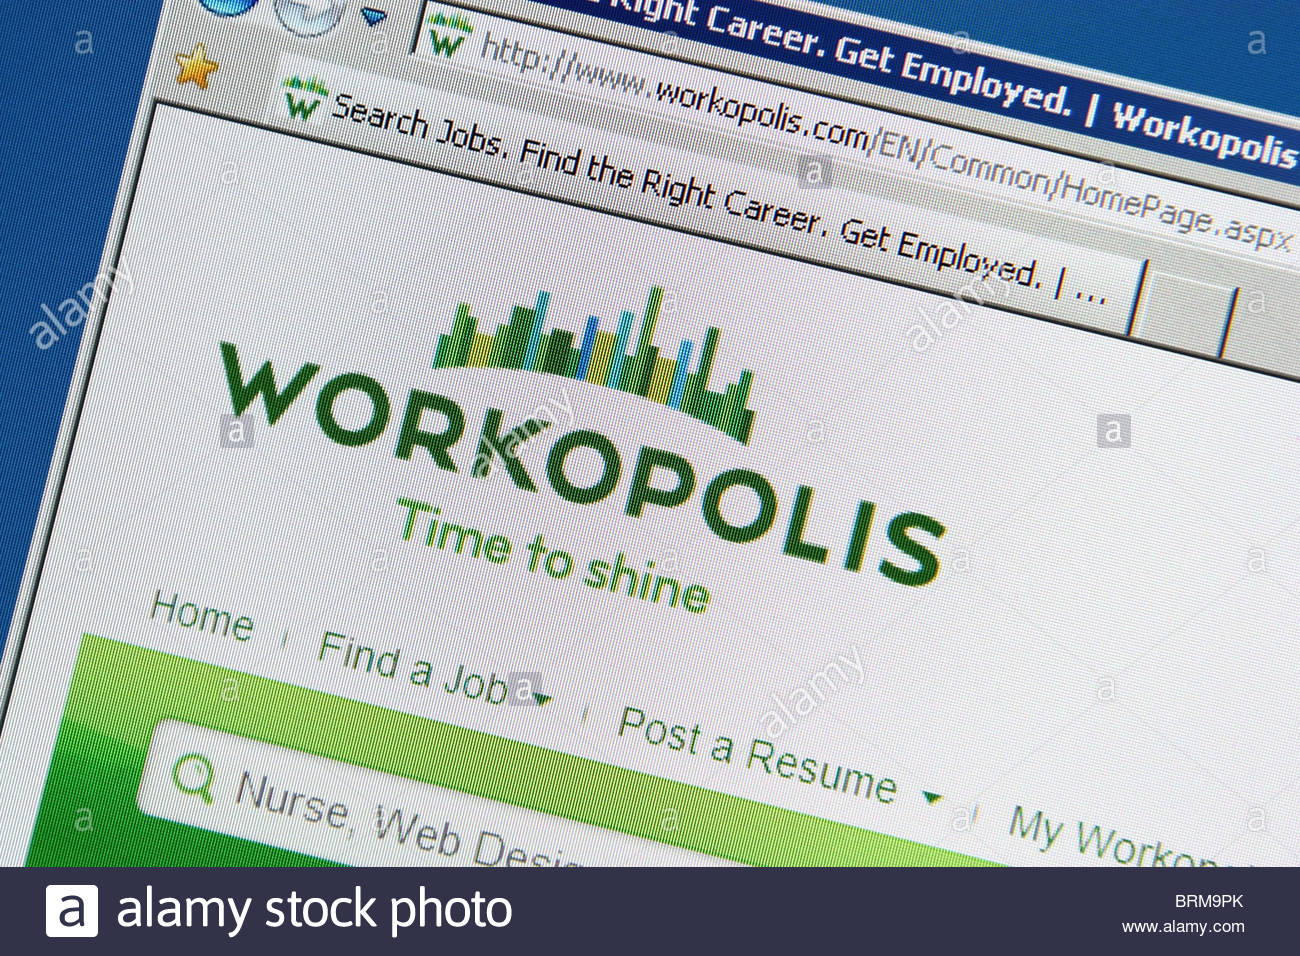 job search website workopolis stock photos images resume brm9pk roofing foreman Resume Workopolis Resume Search